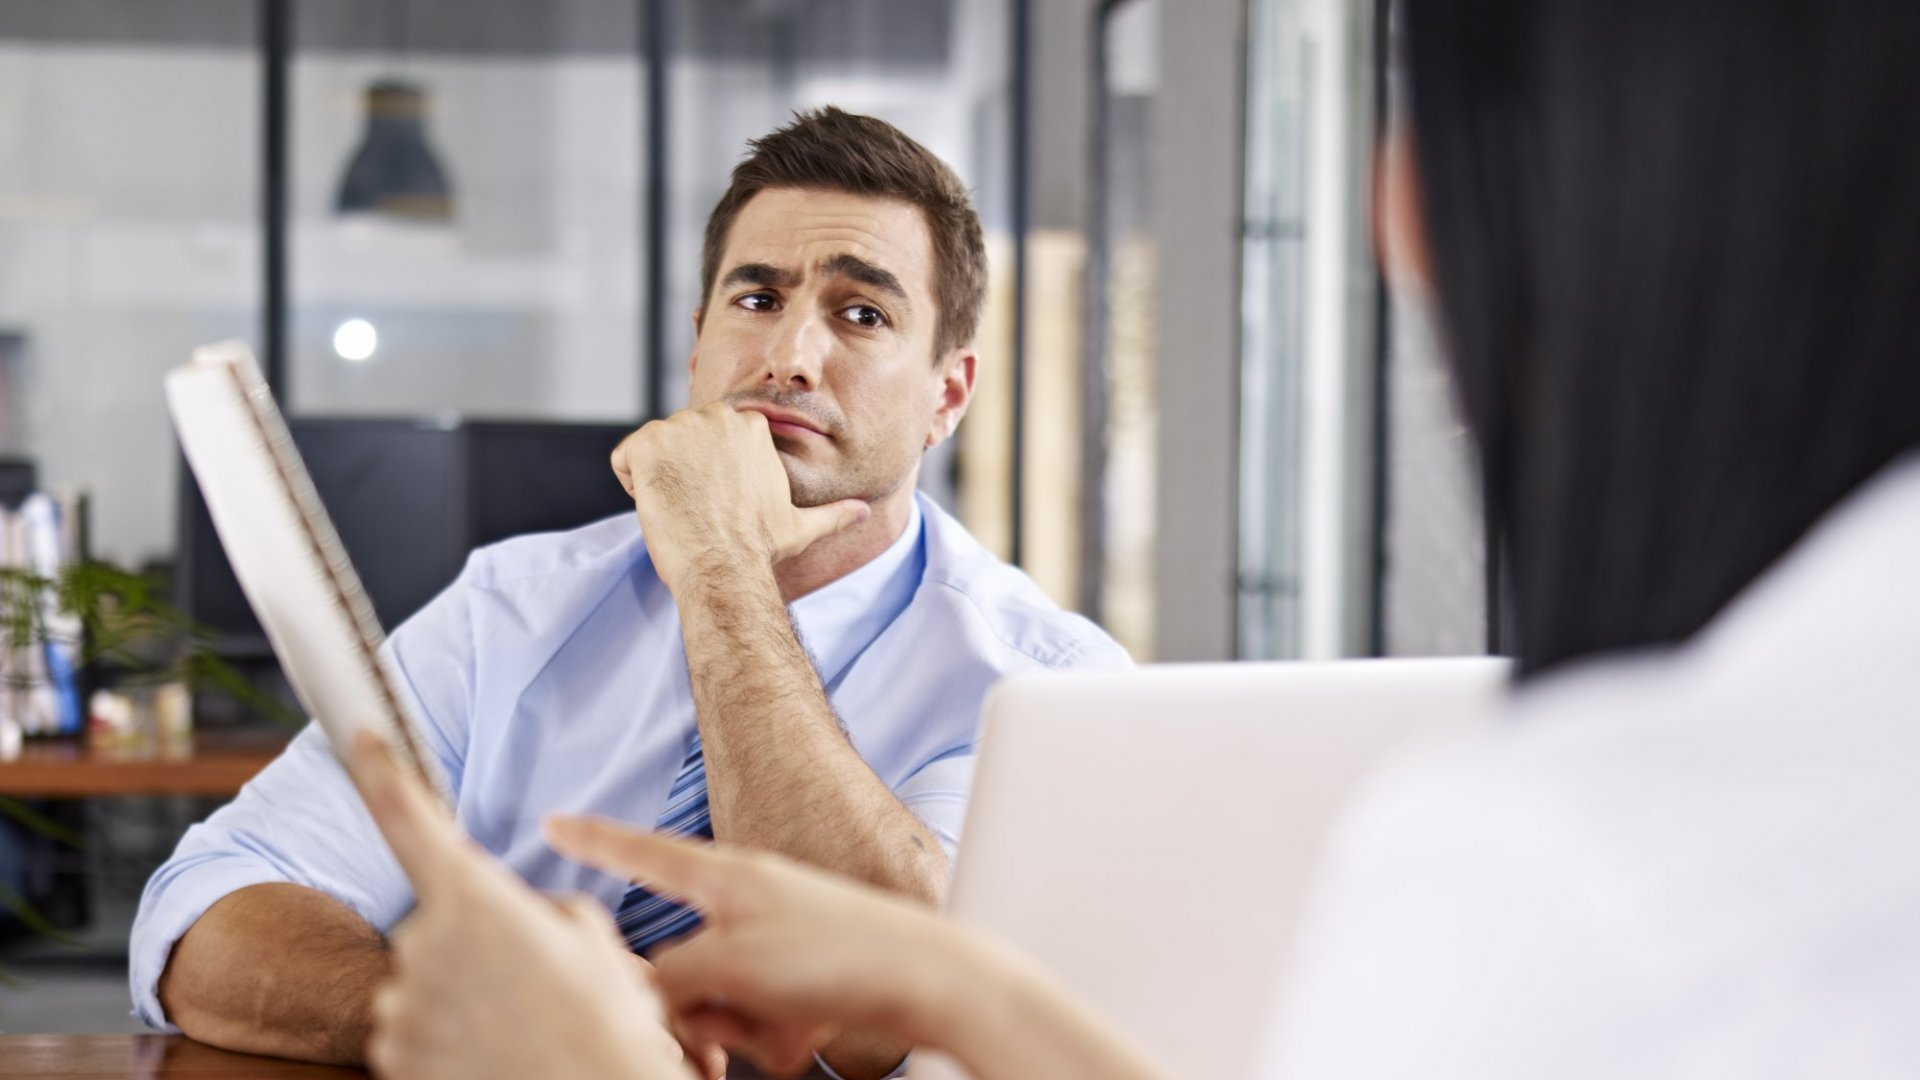 5 Illegal Interview Questions You Should Never Answer (and What to Do When Facing Them)